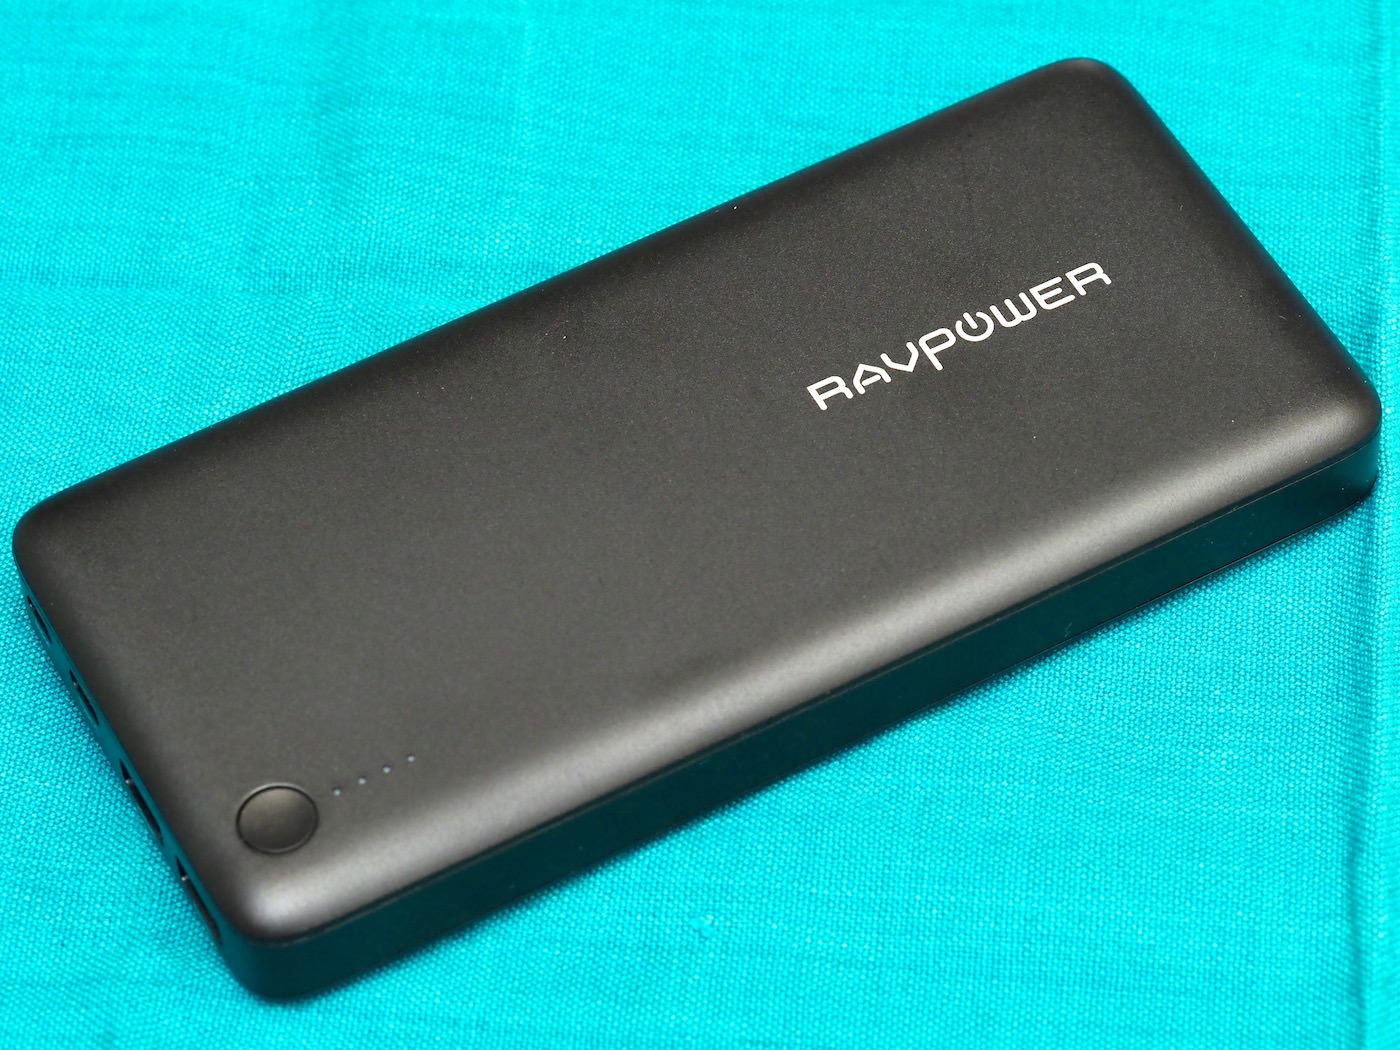 Ravpower type c 26800mah 00001